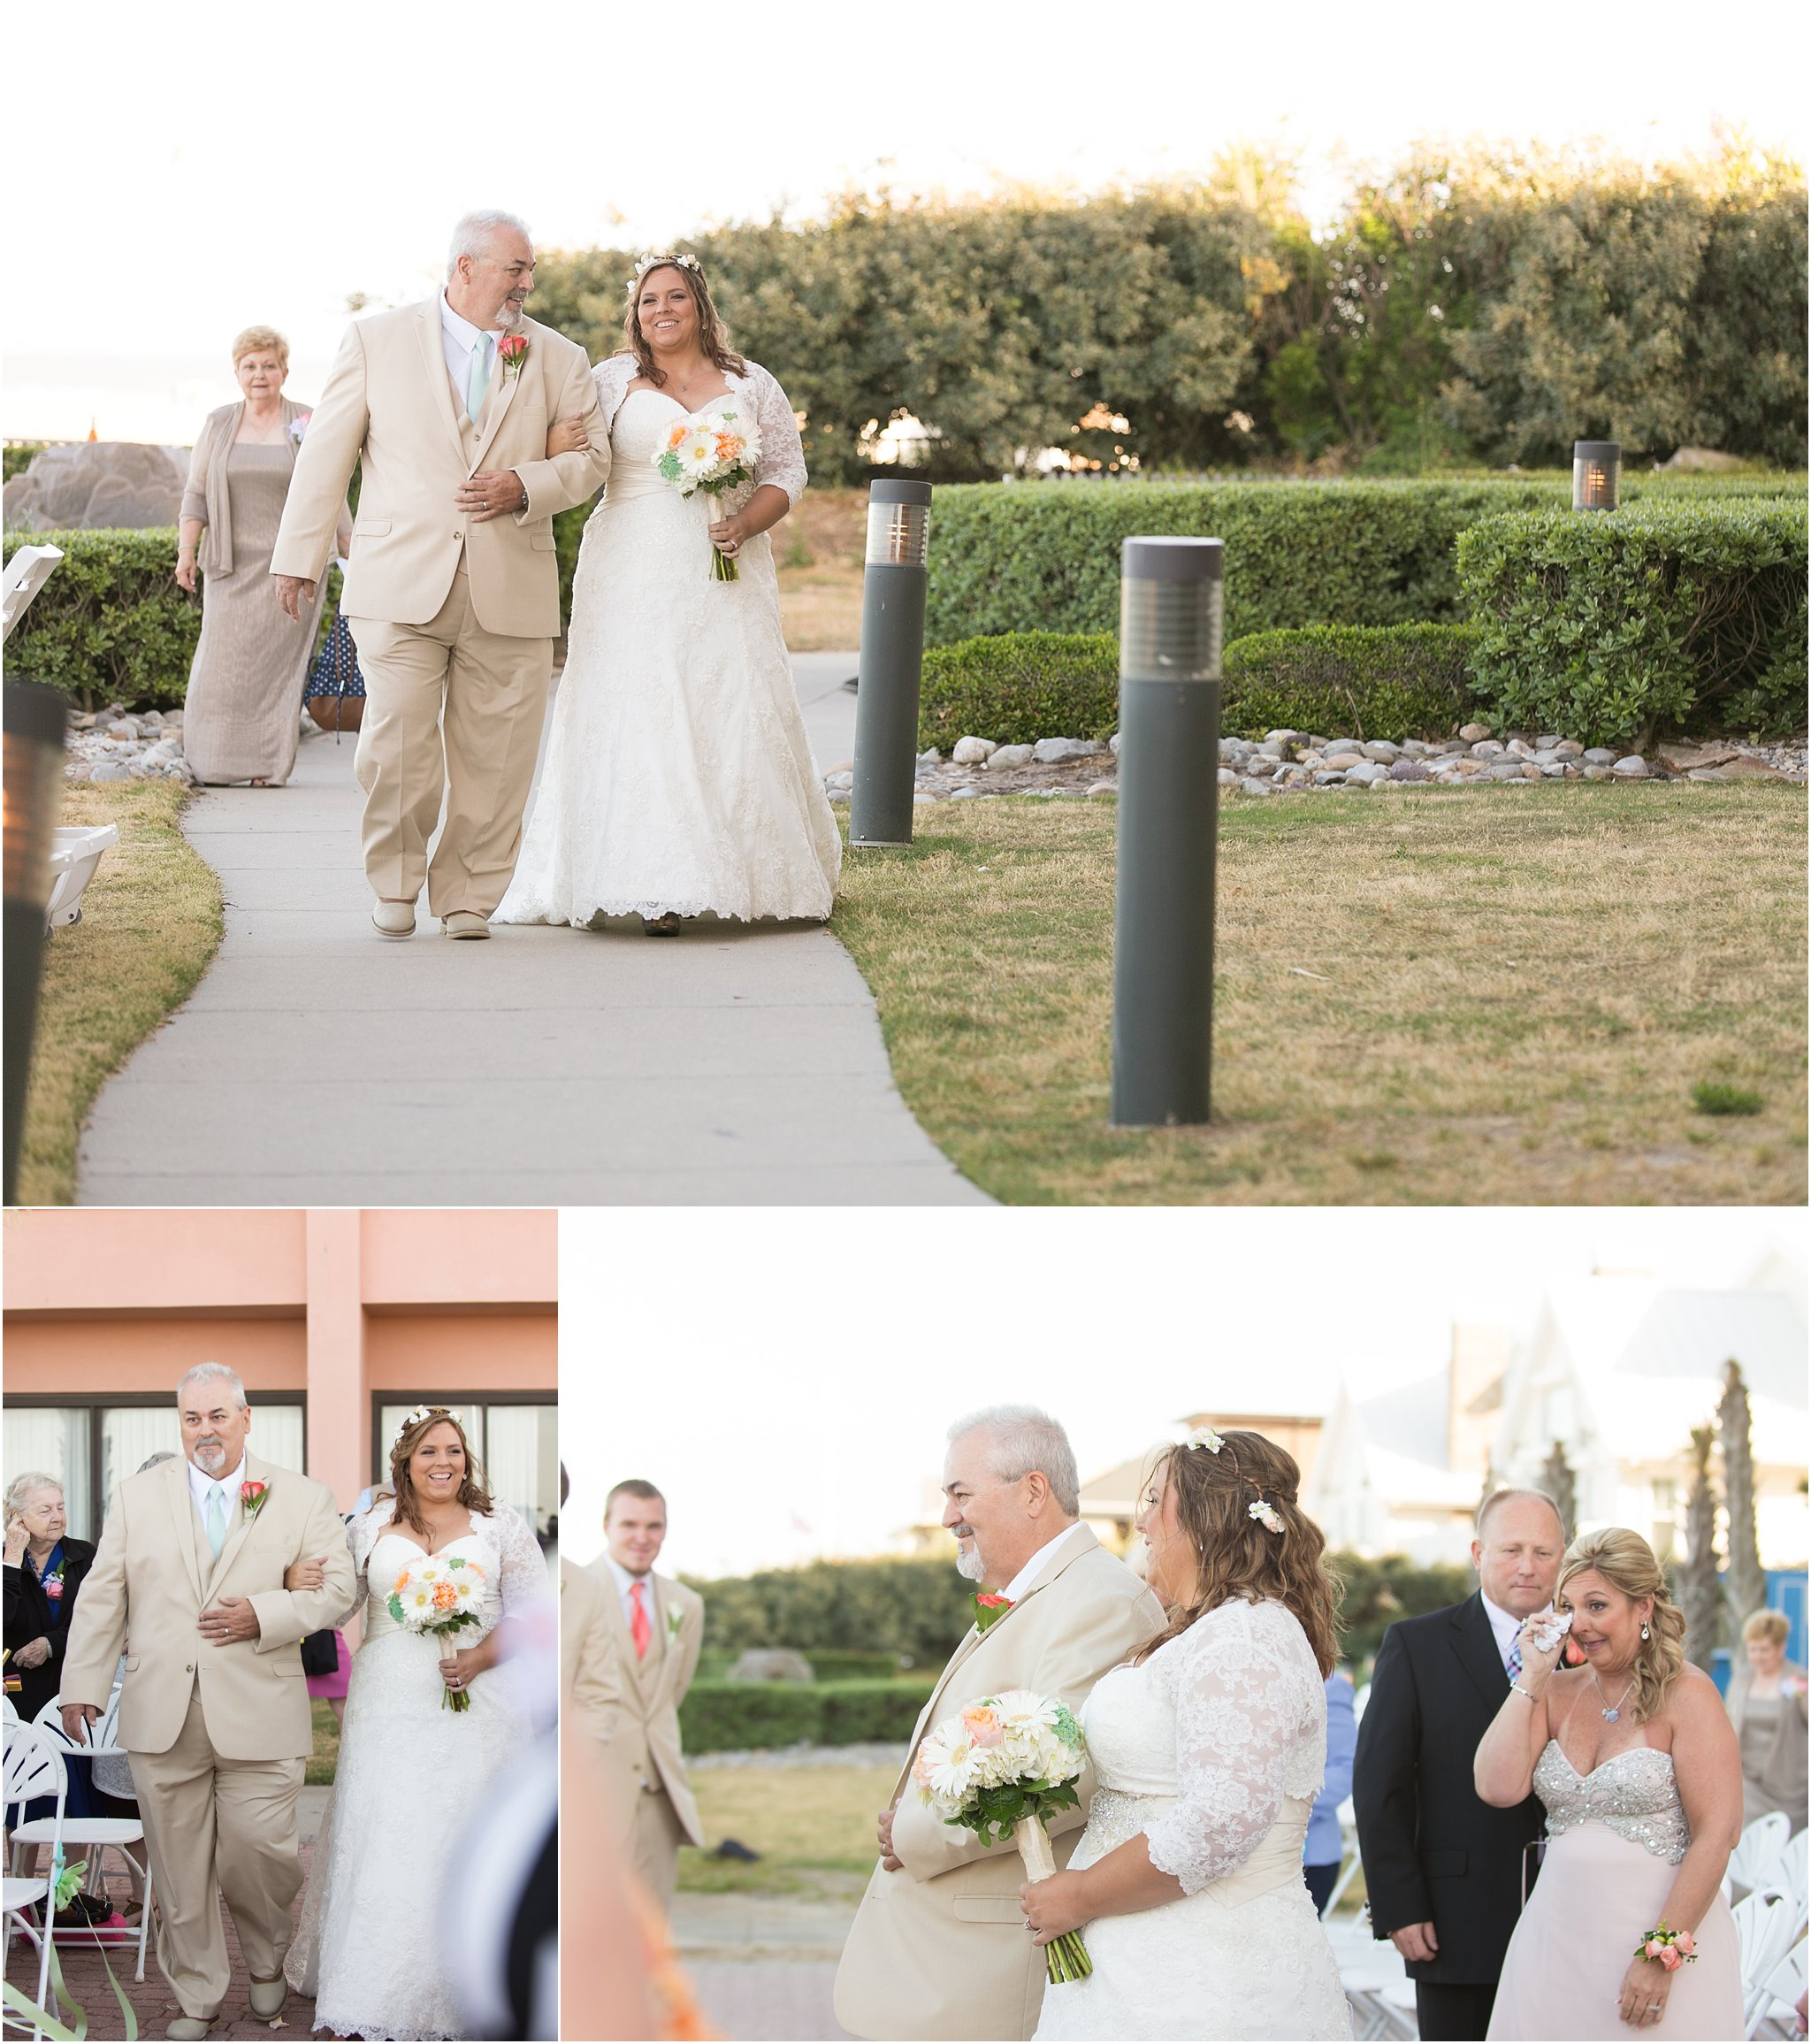 Virginia Beach Wedding Venues: The Wyndham Virginia Beach Oceanfront Wedding: Ashley